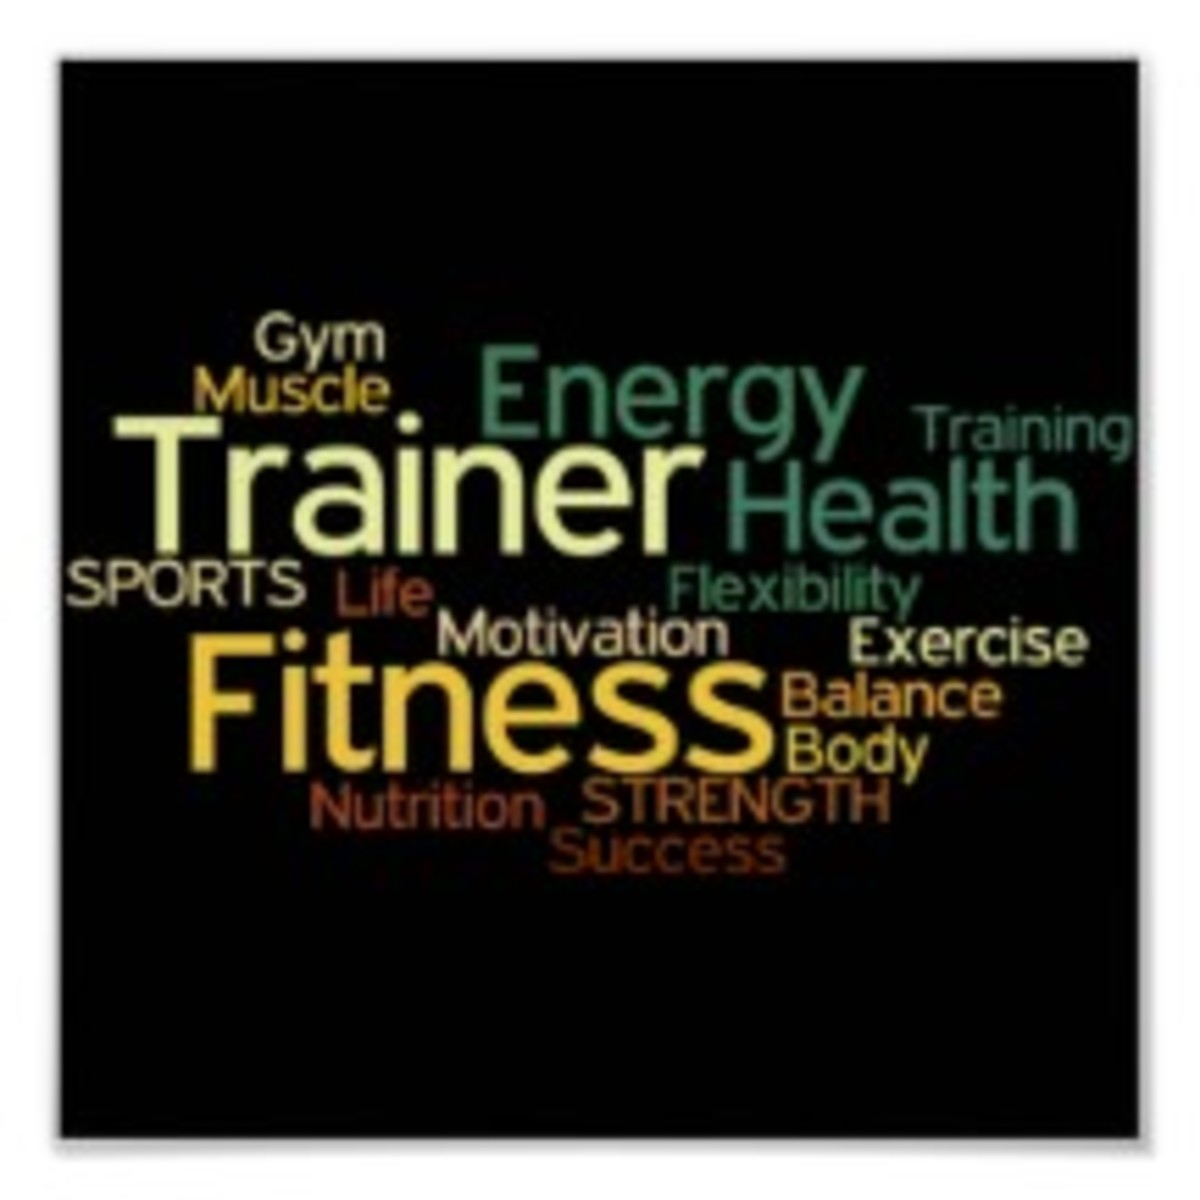 Trainer Fitness Energy Health Post6er